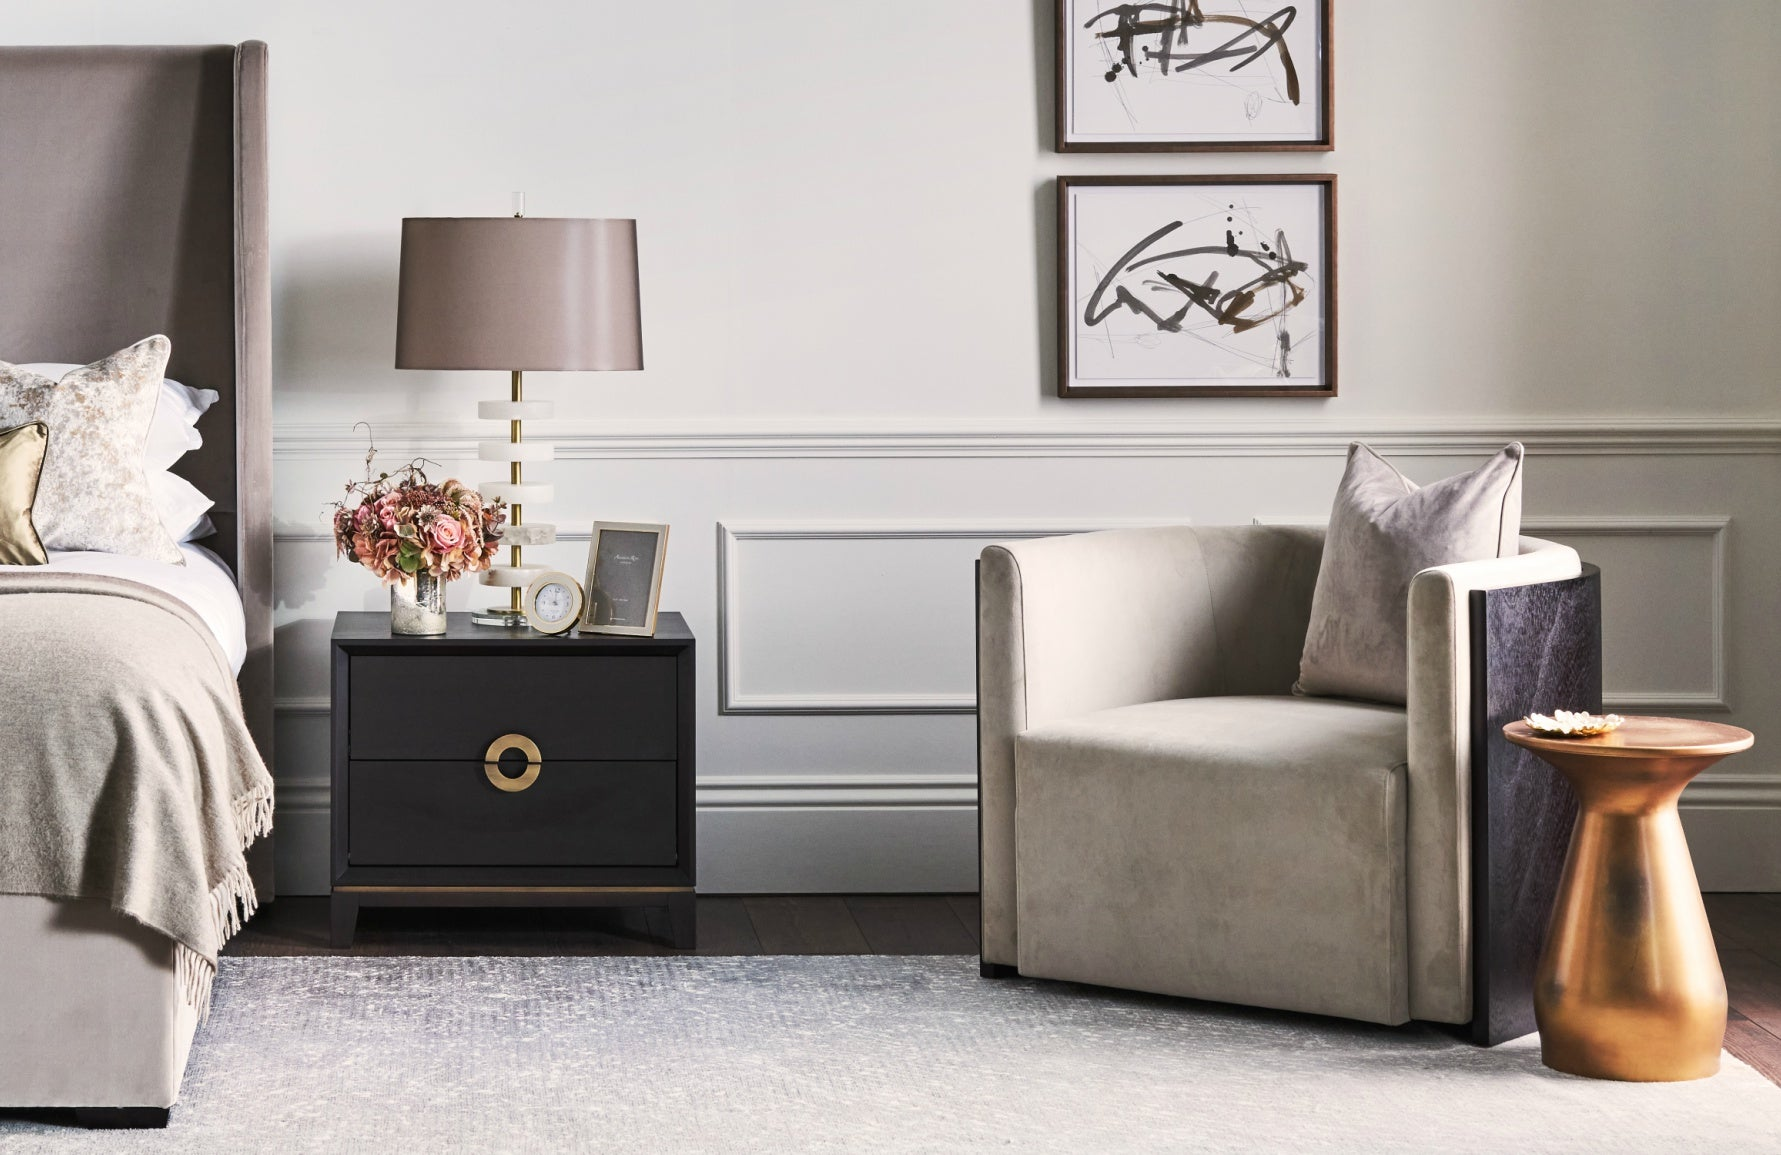 Introducing The Sloane Collection | Luxury Bedroom Furniture Online | Shop now at LuxDeco.com.jpg